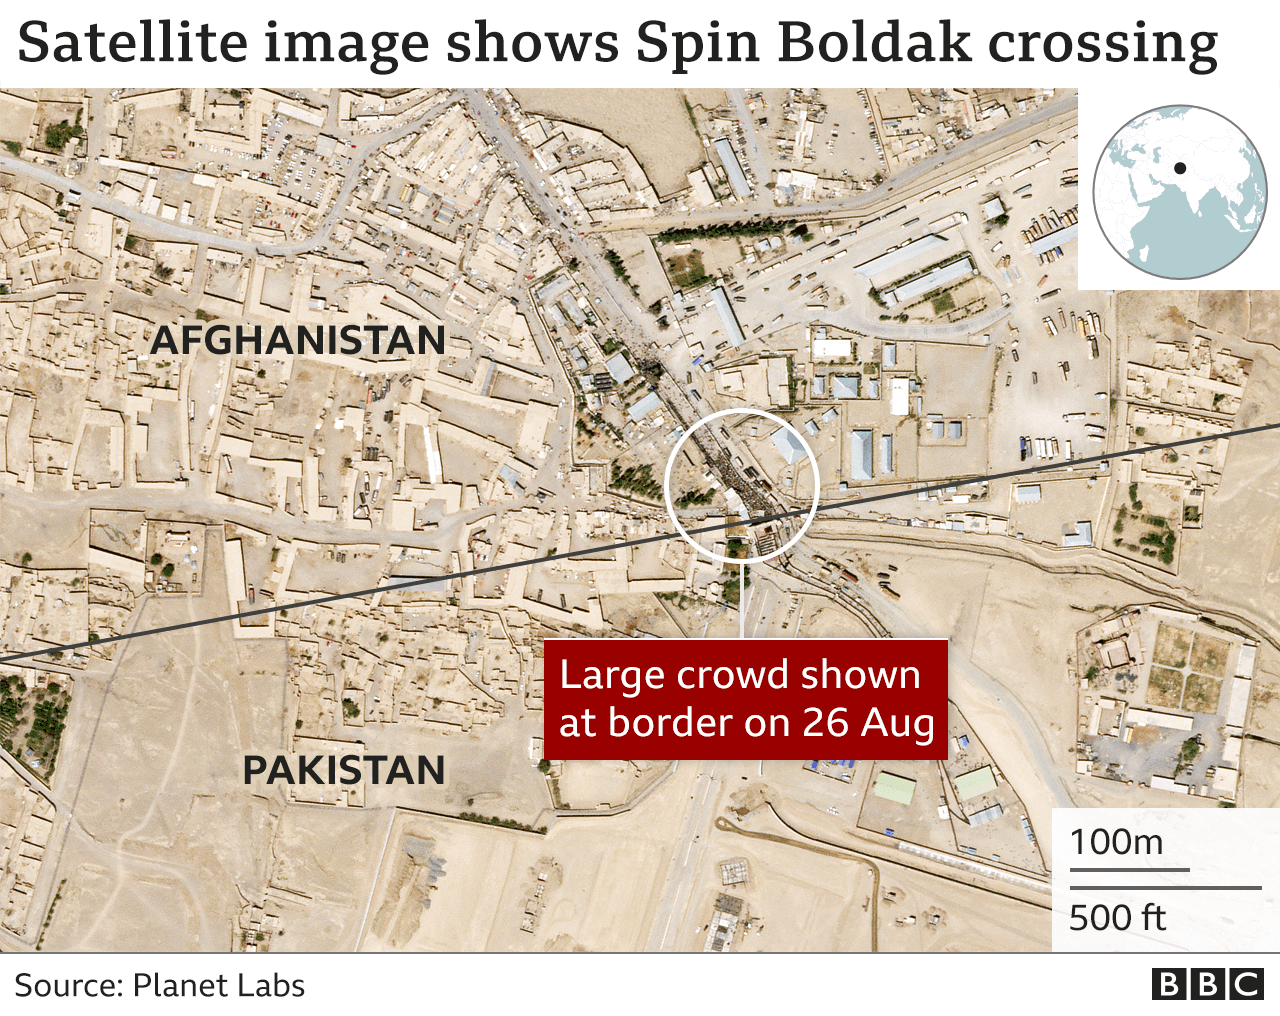 Satellite image showing a crowd of people gathered at the Spin Boldak crossing point between Afghanistan and Pakistan